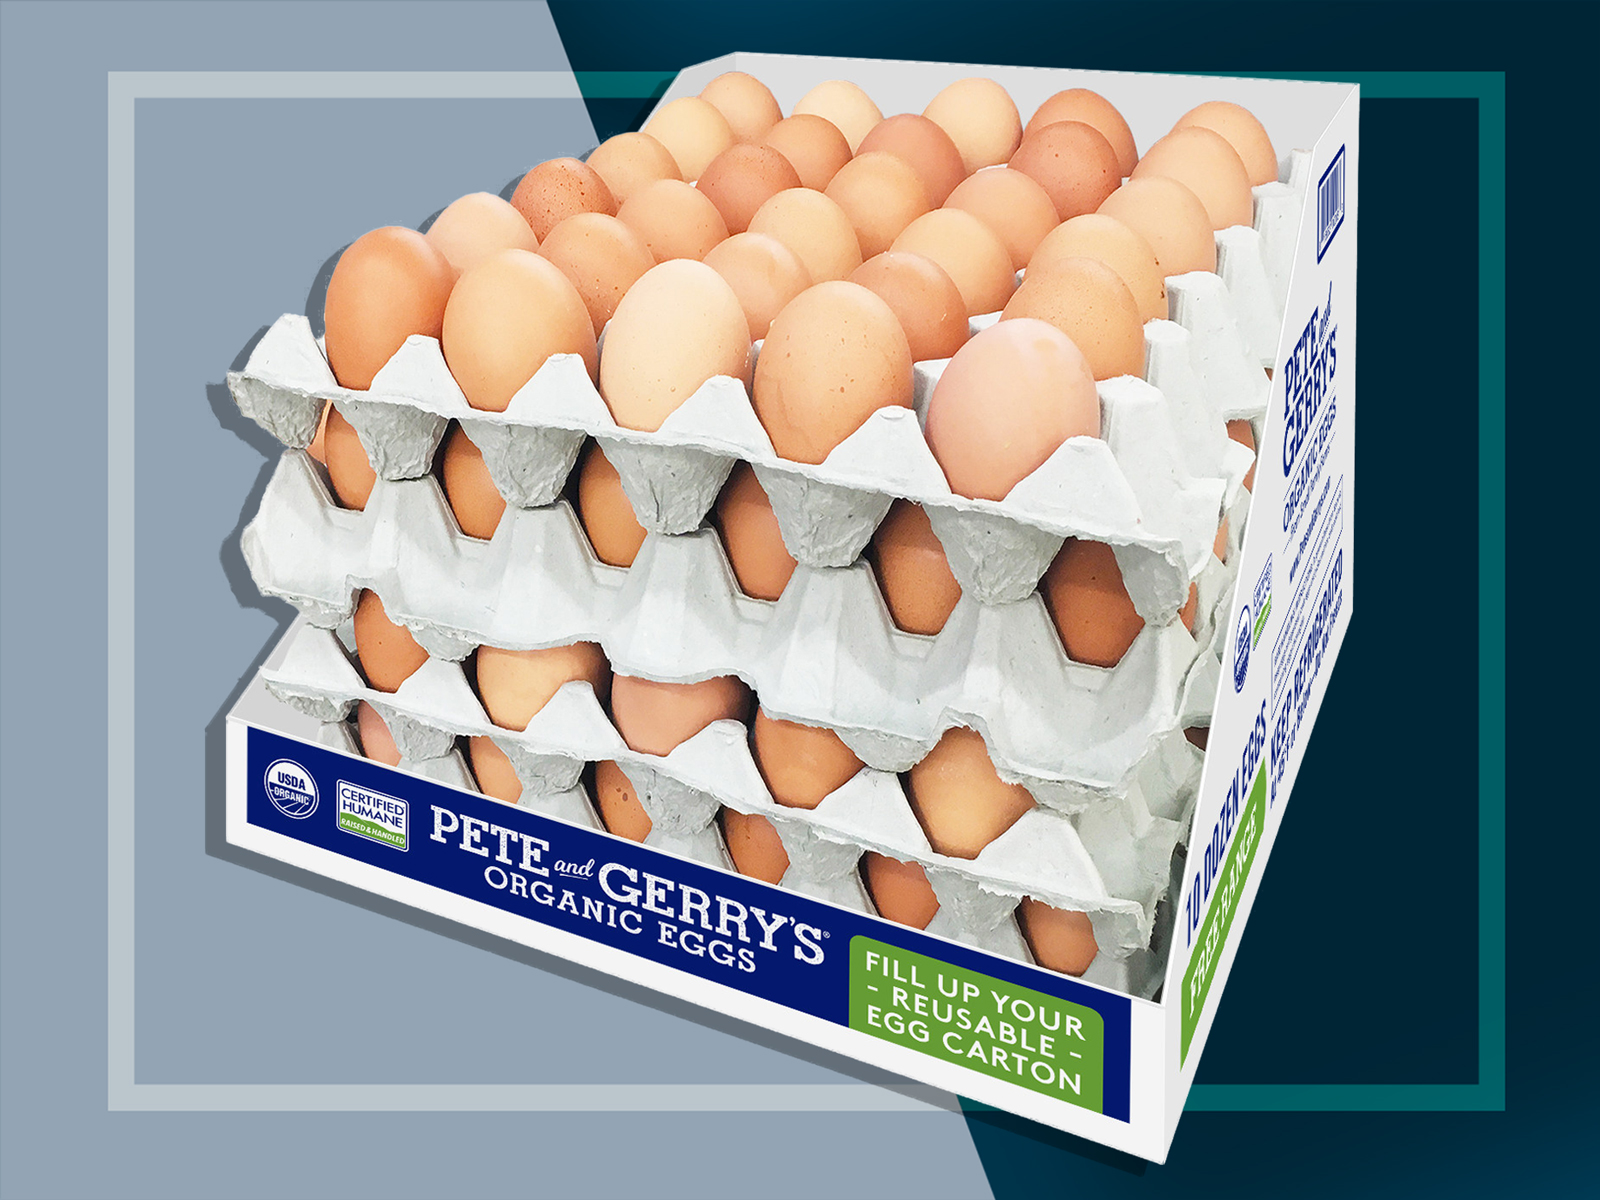 Pete and Gerry's Resuable Egg Cartons